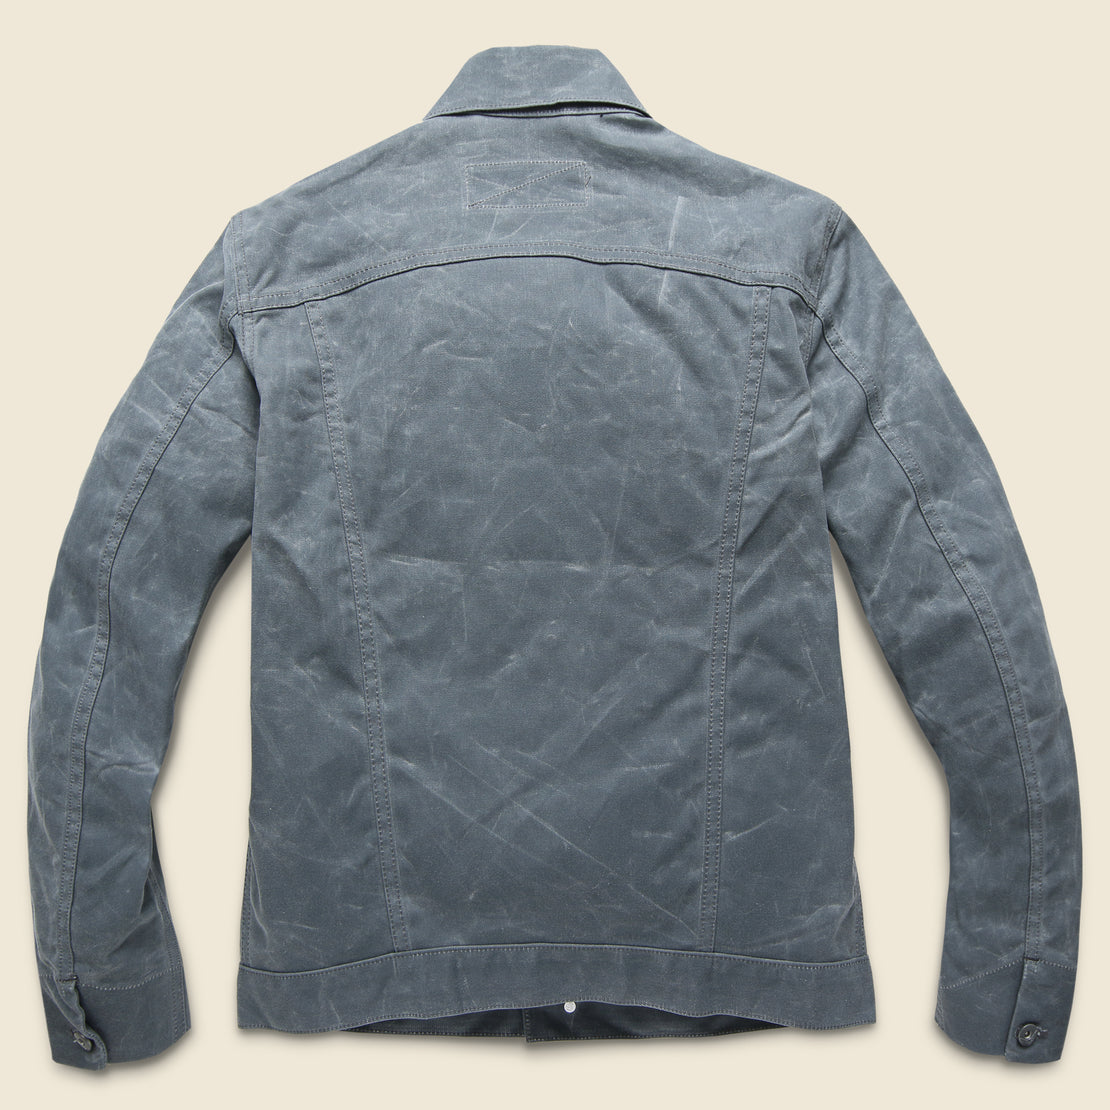 Supply Jacket - Waxed Grey Ridgeline